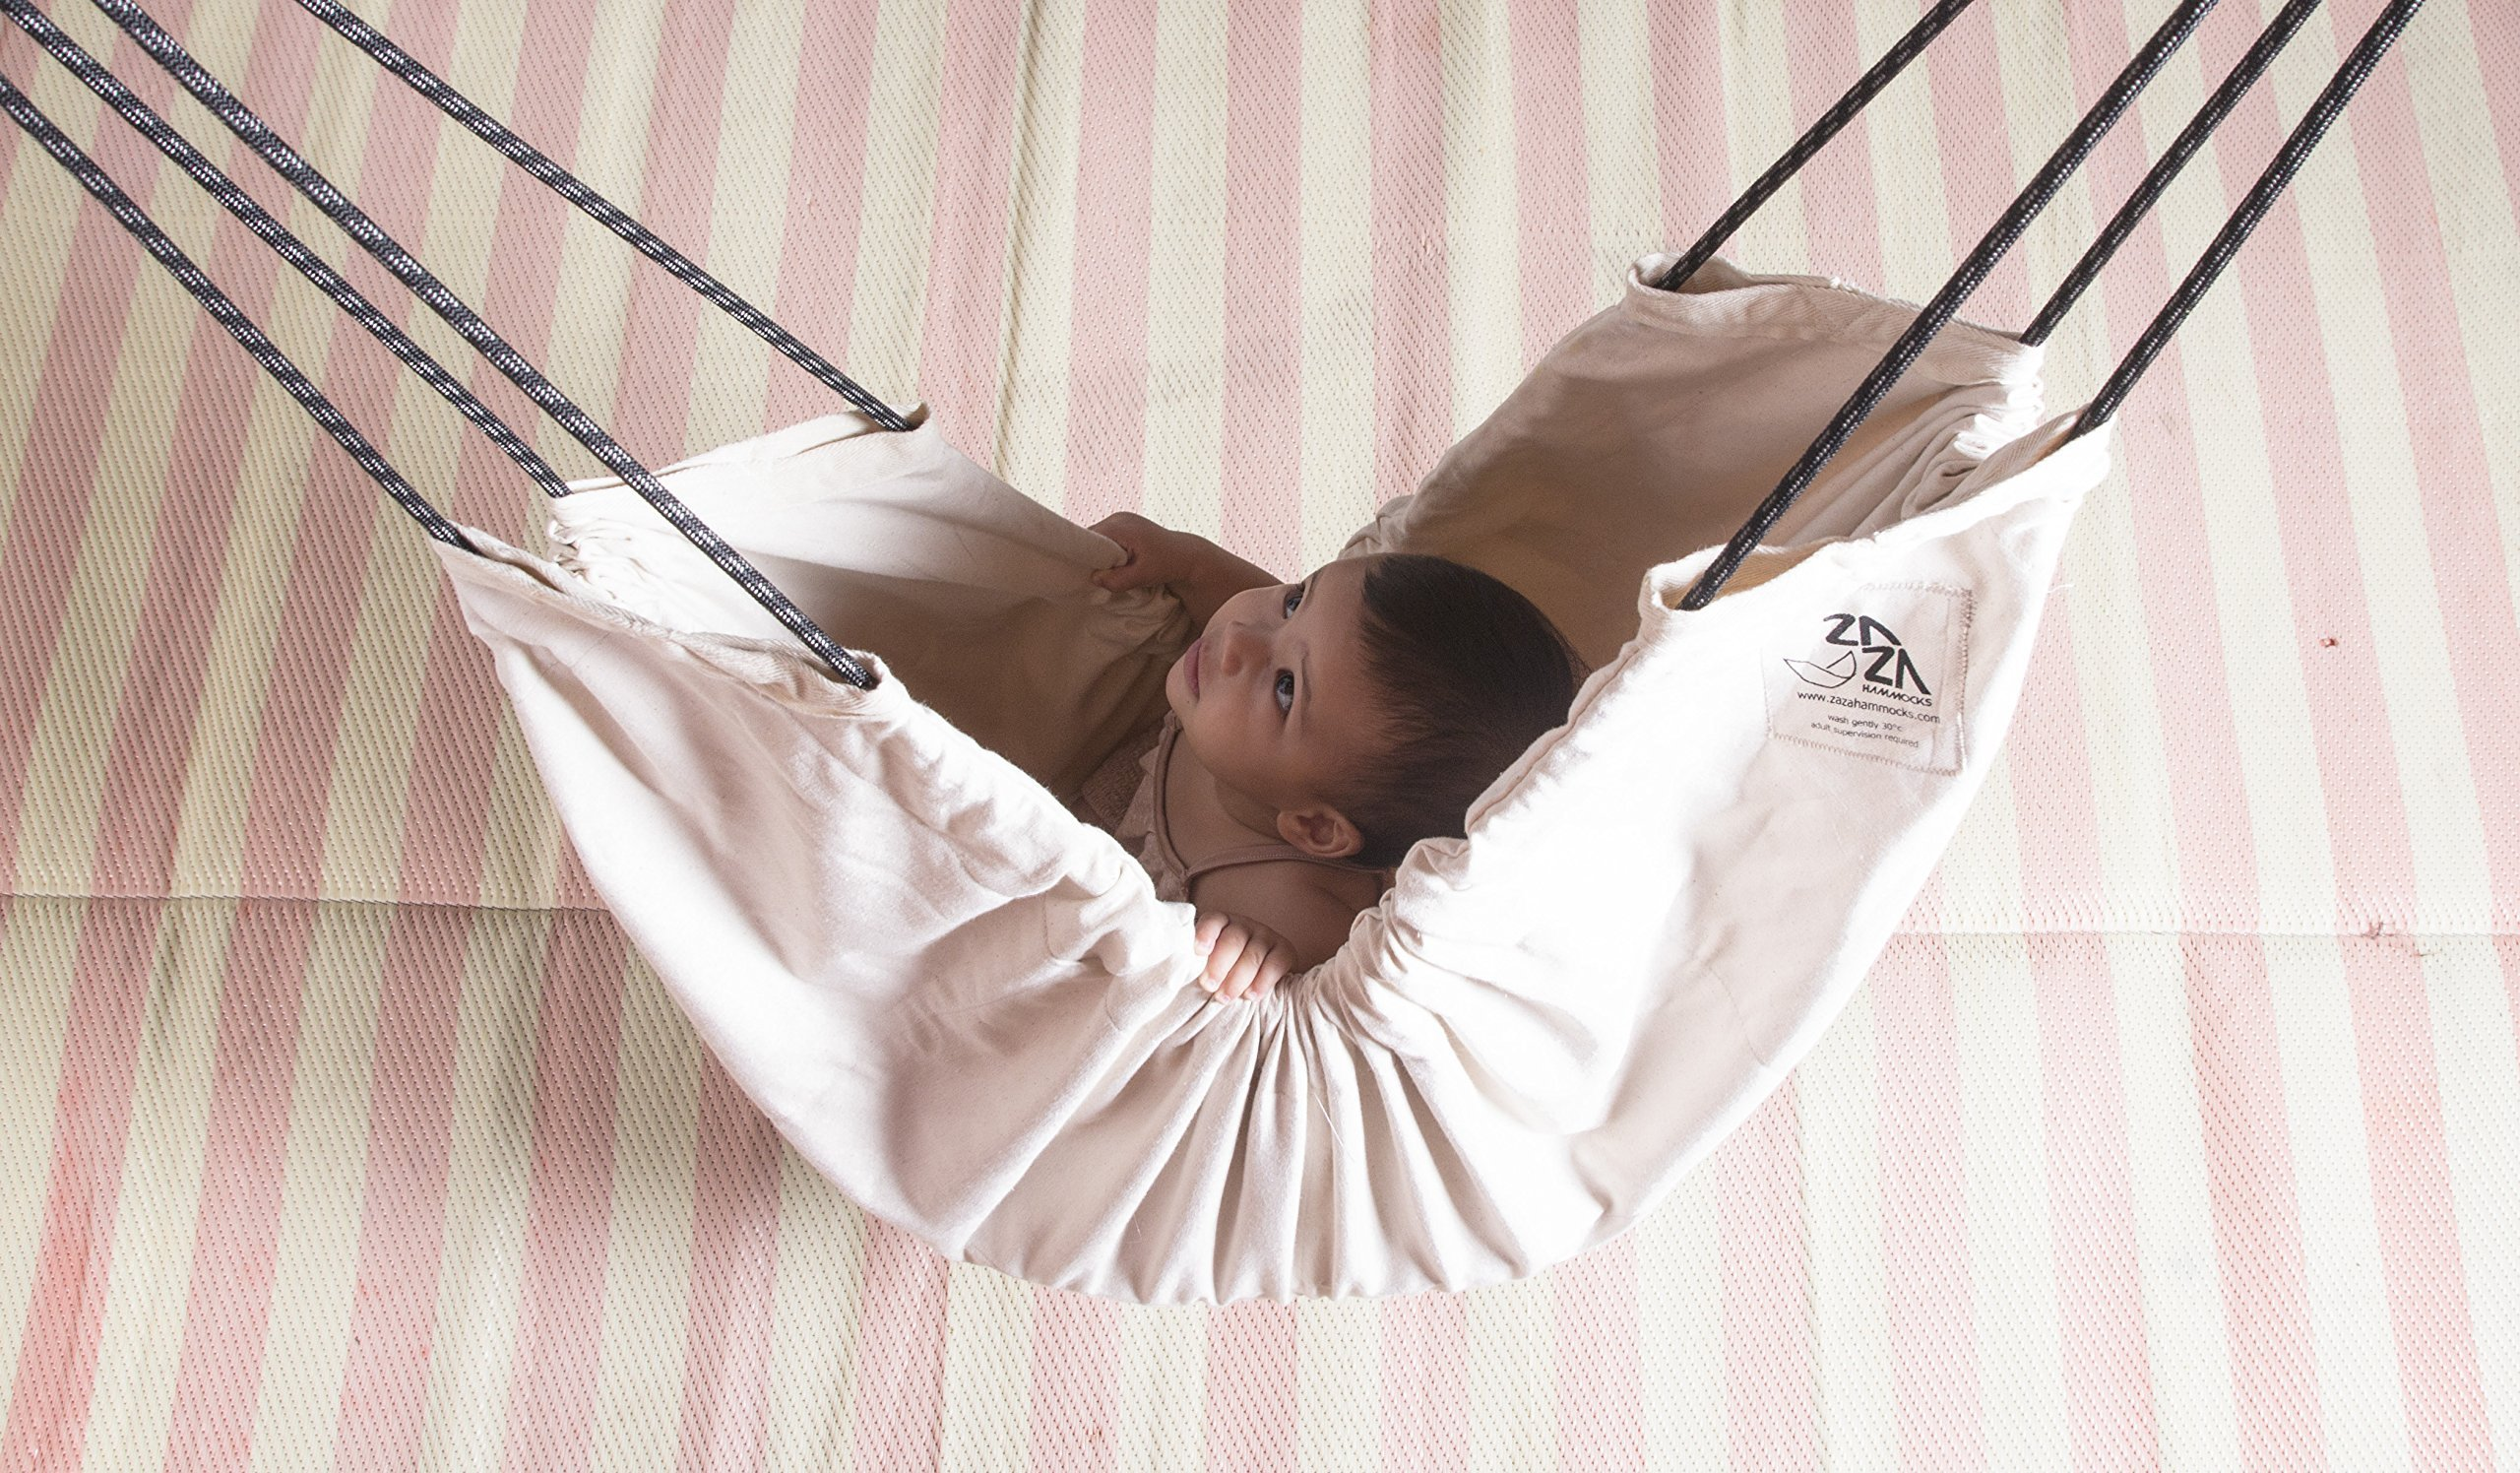 Baby Hammock Swing . Zaza Nature Baby Nest, Swinging Seat Hammock For Babies, Children and Teenagers.